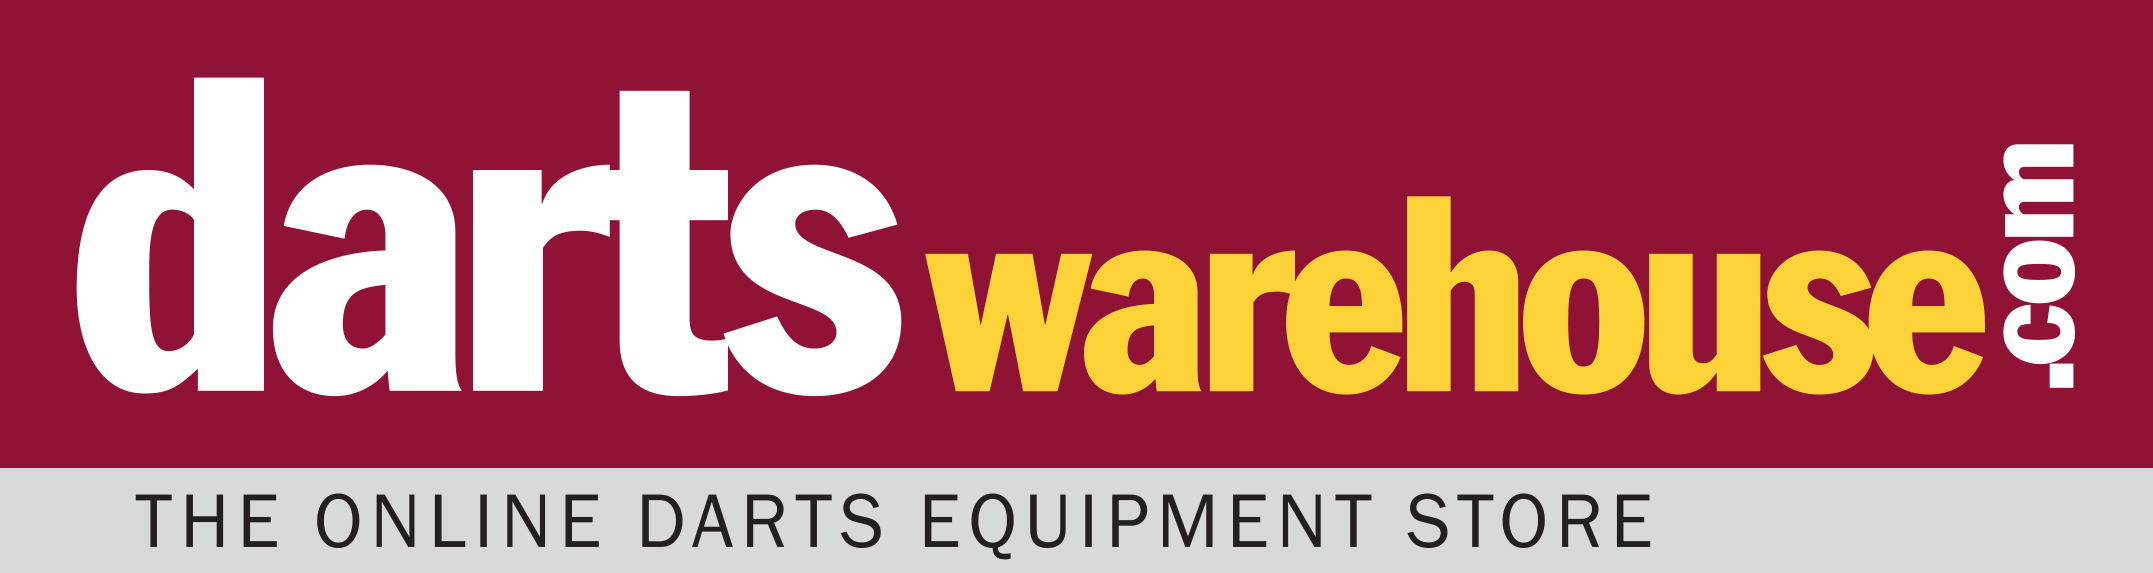 dartswarehouse-logo